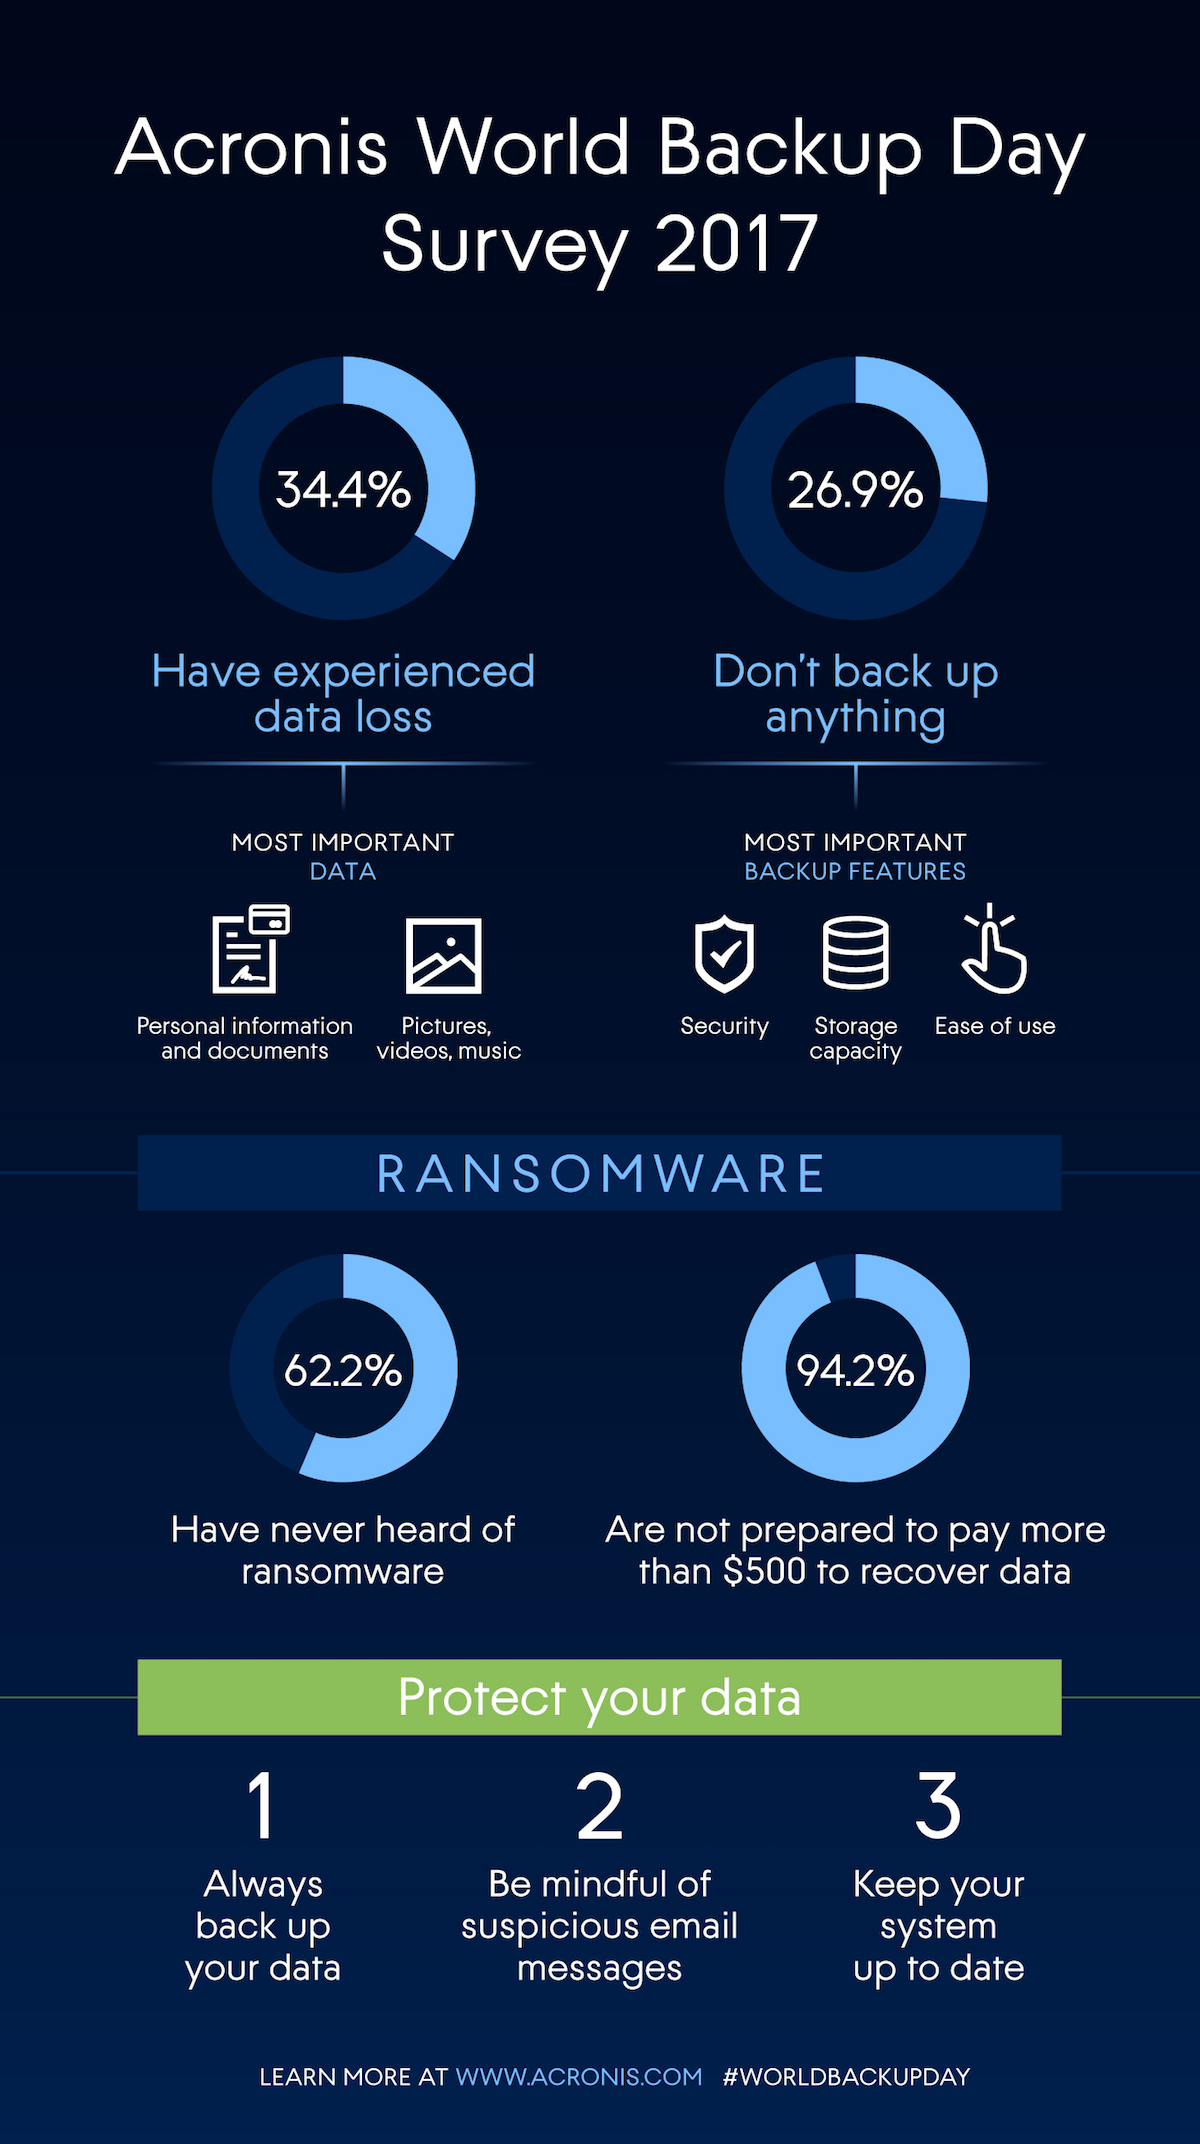 Acronis World Backup Day Survey Infographic